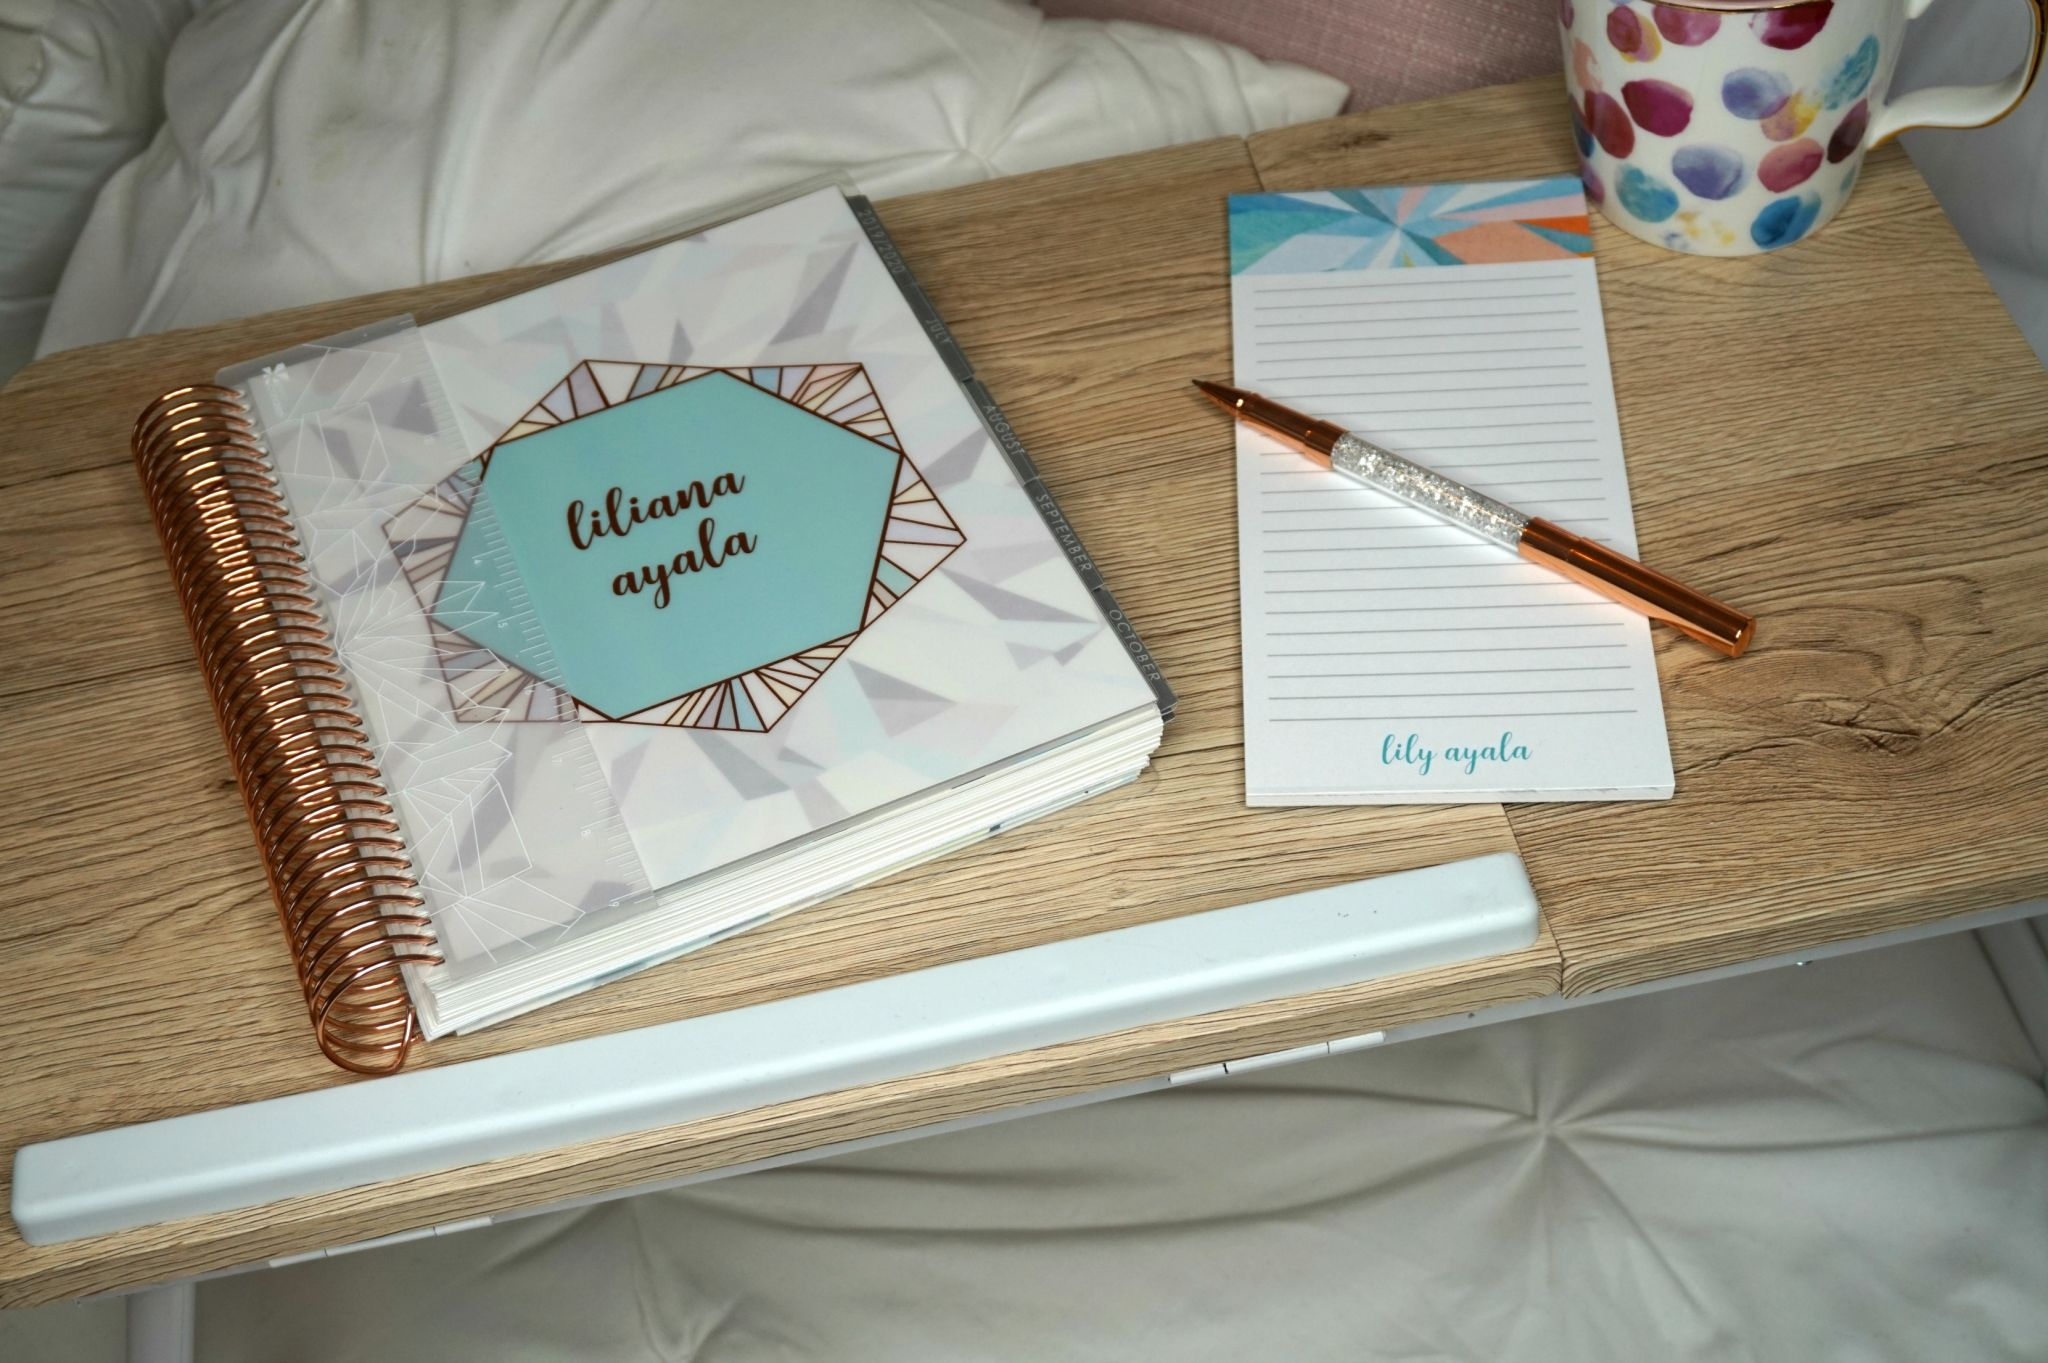 Planner Organization Hacks // How To Stay Organized // How To Use a Planner // Planner Hacks // Organization Hacks // Erin Condren LifePlanner | Beauty With Lily